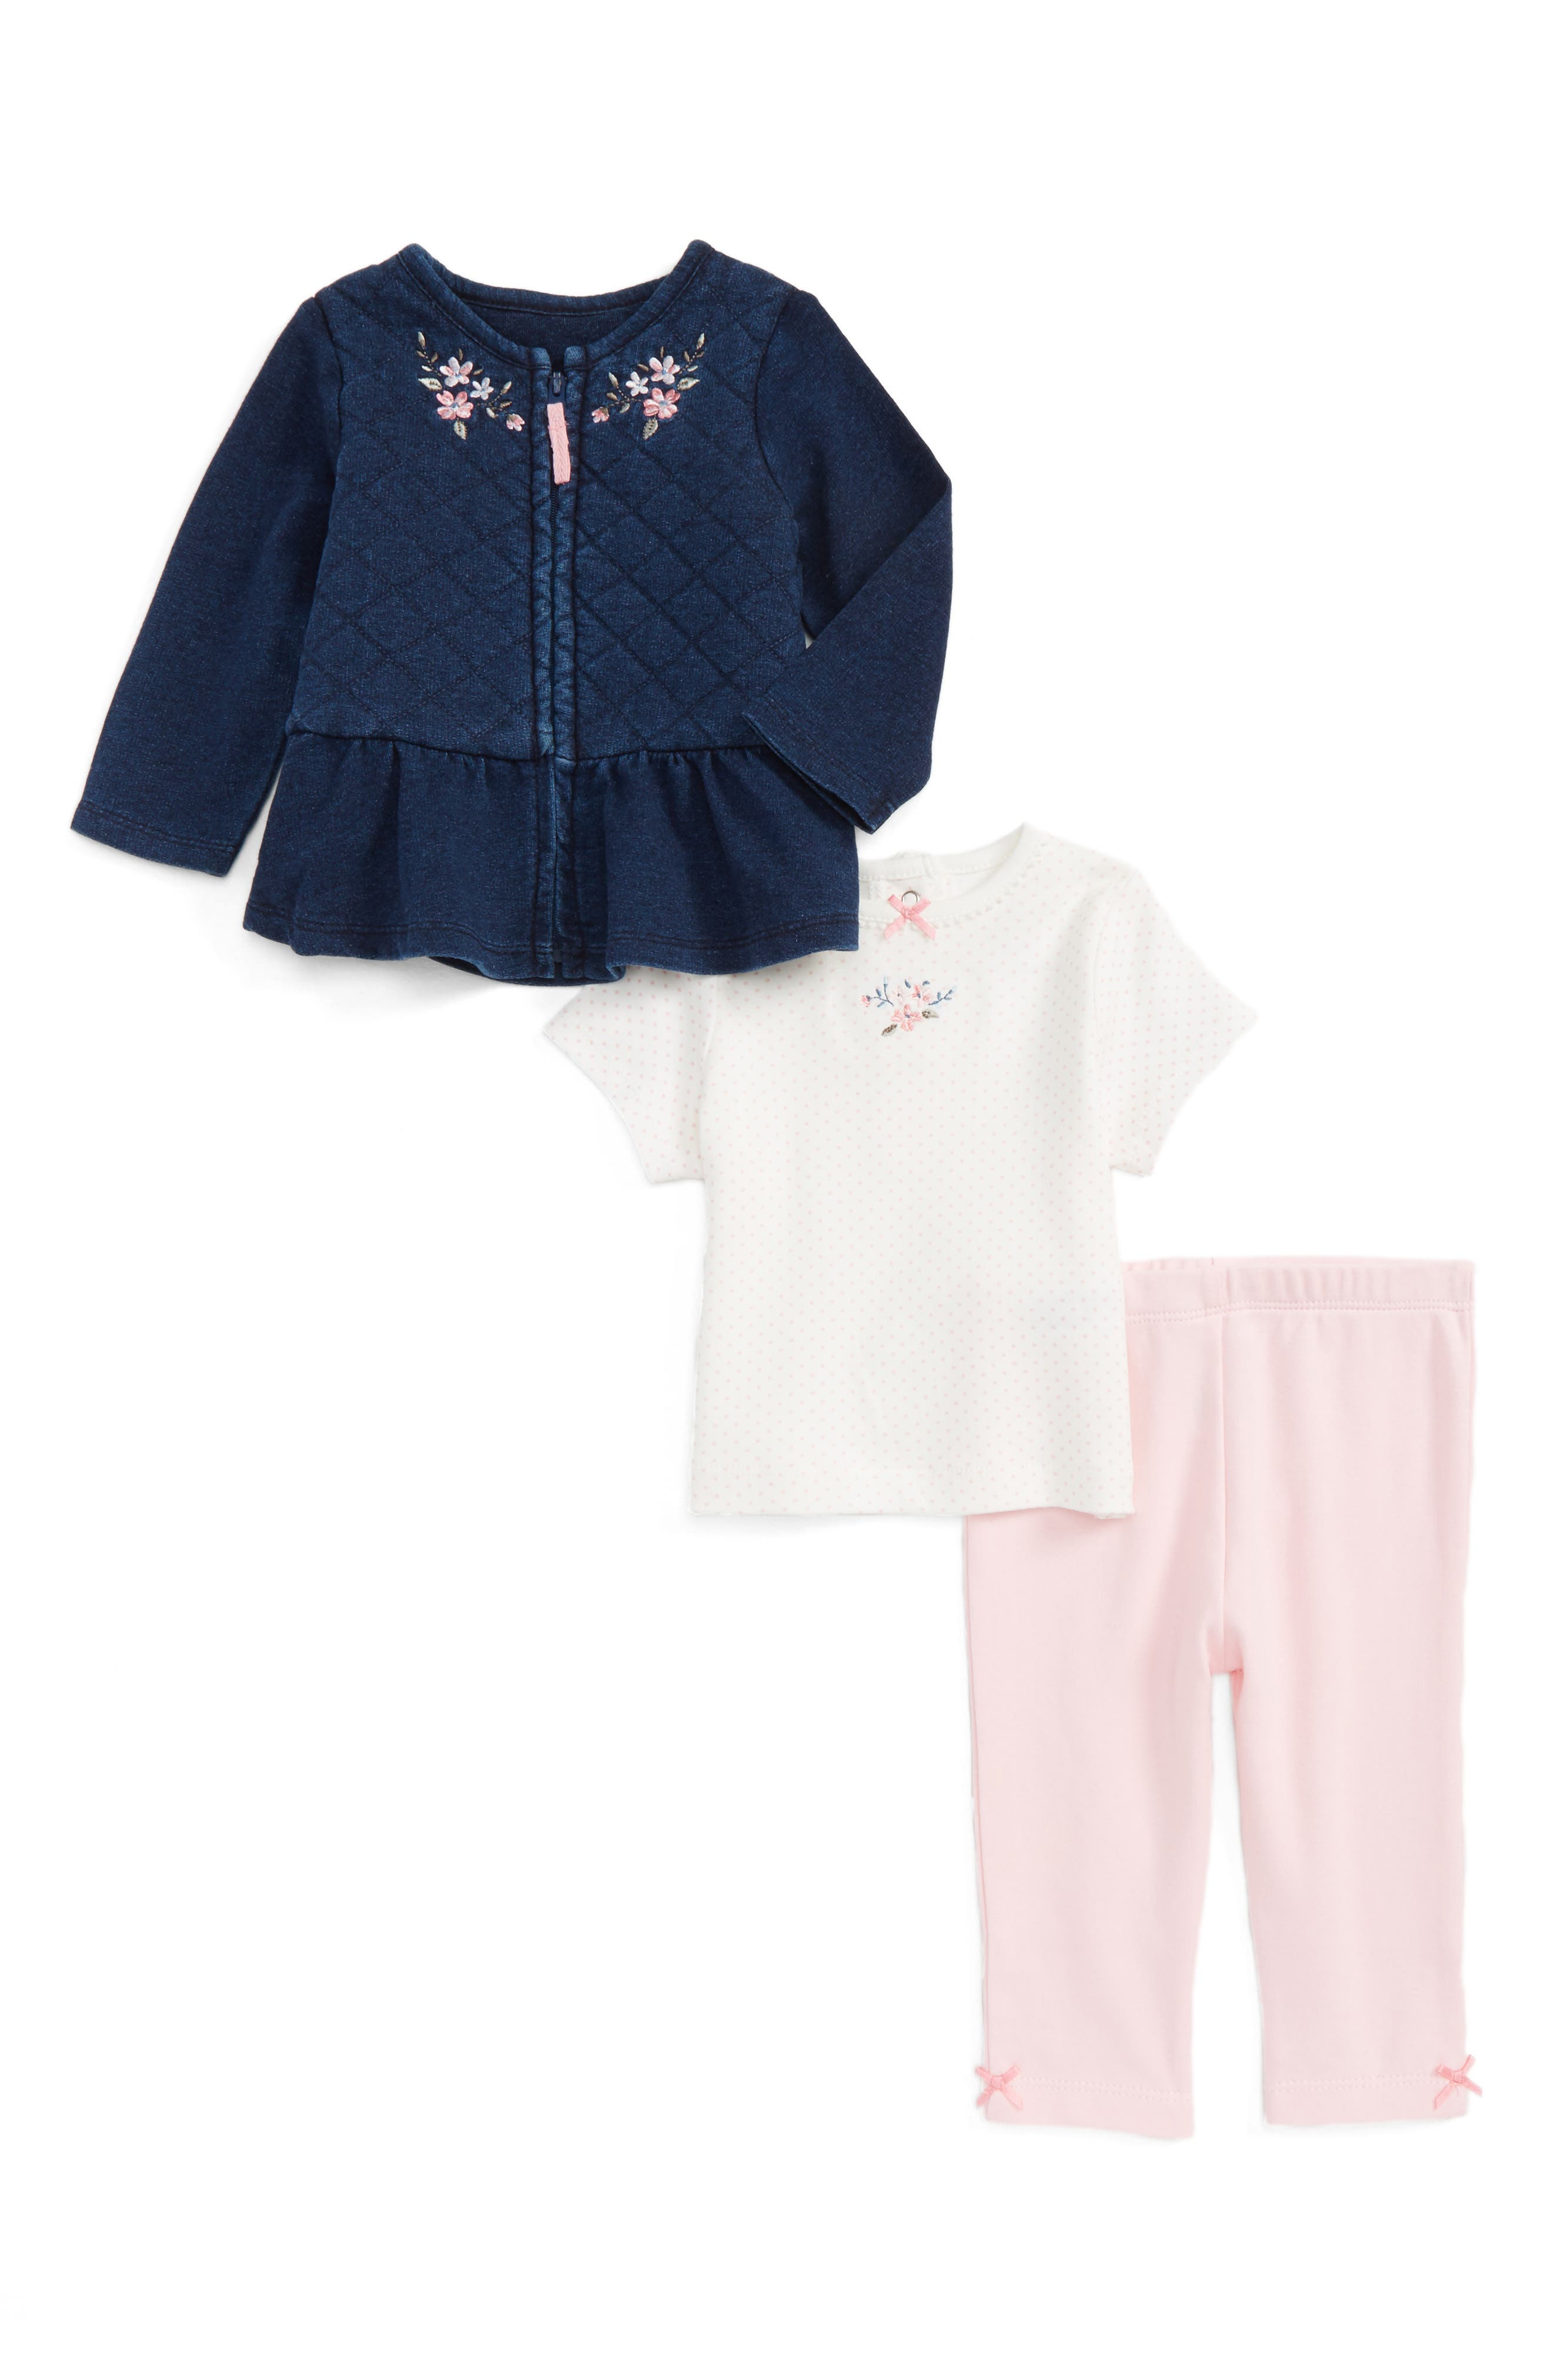 Main Image - Little Me Embroidered Jacket, Tee & Leggings Set (Baby Girls)